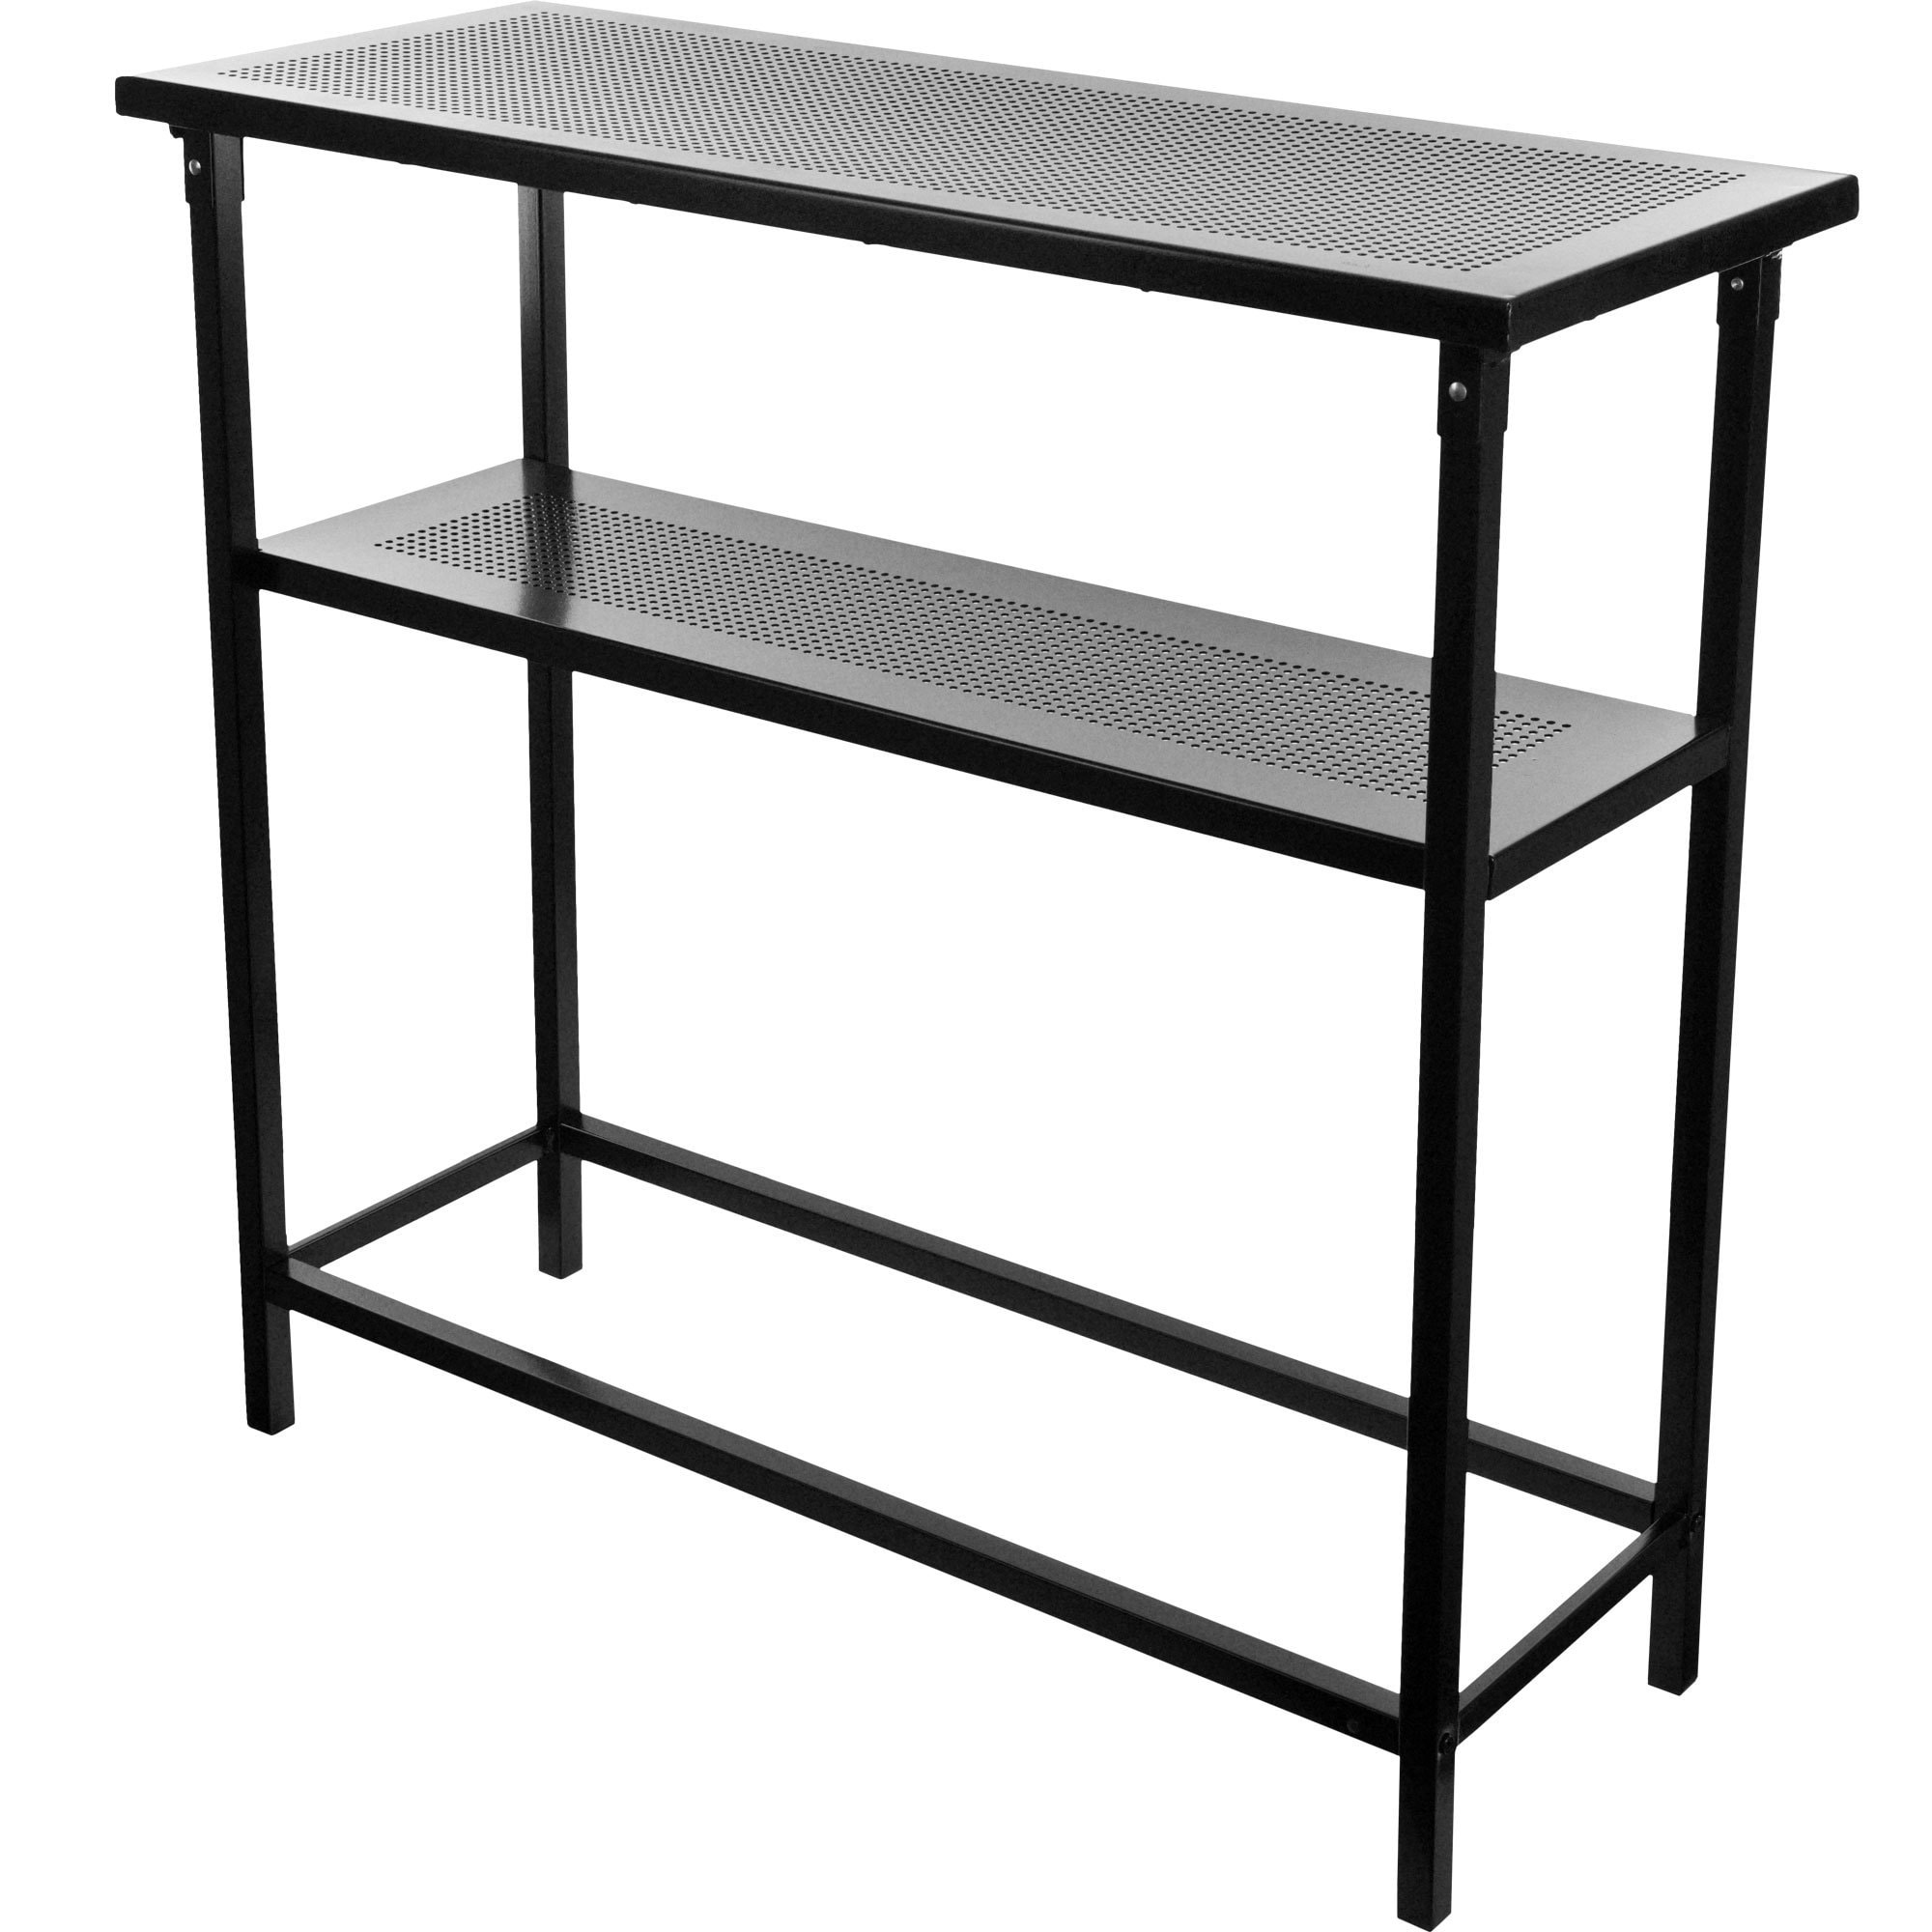 Shop deluxe metal portable bar table with carrying case free shipping today overstock com 10618623